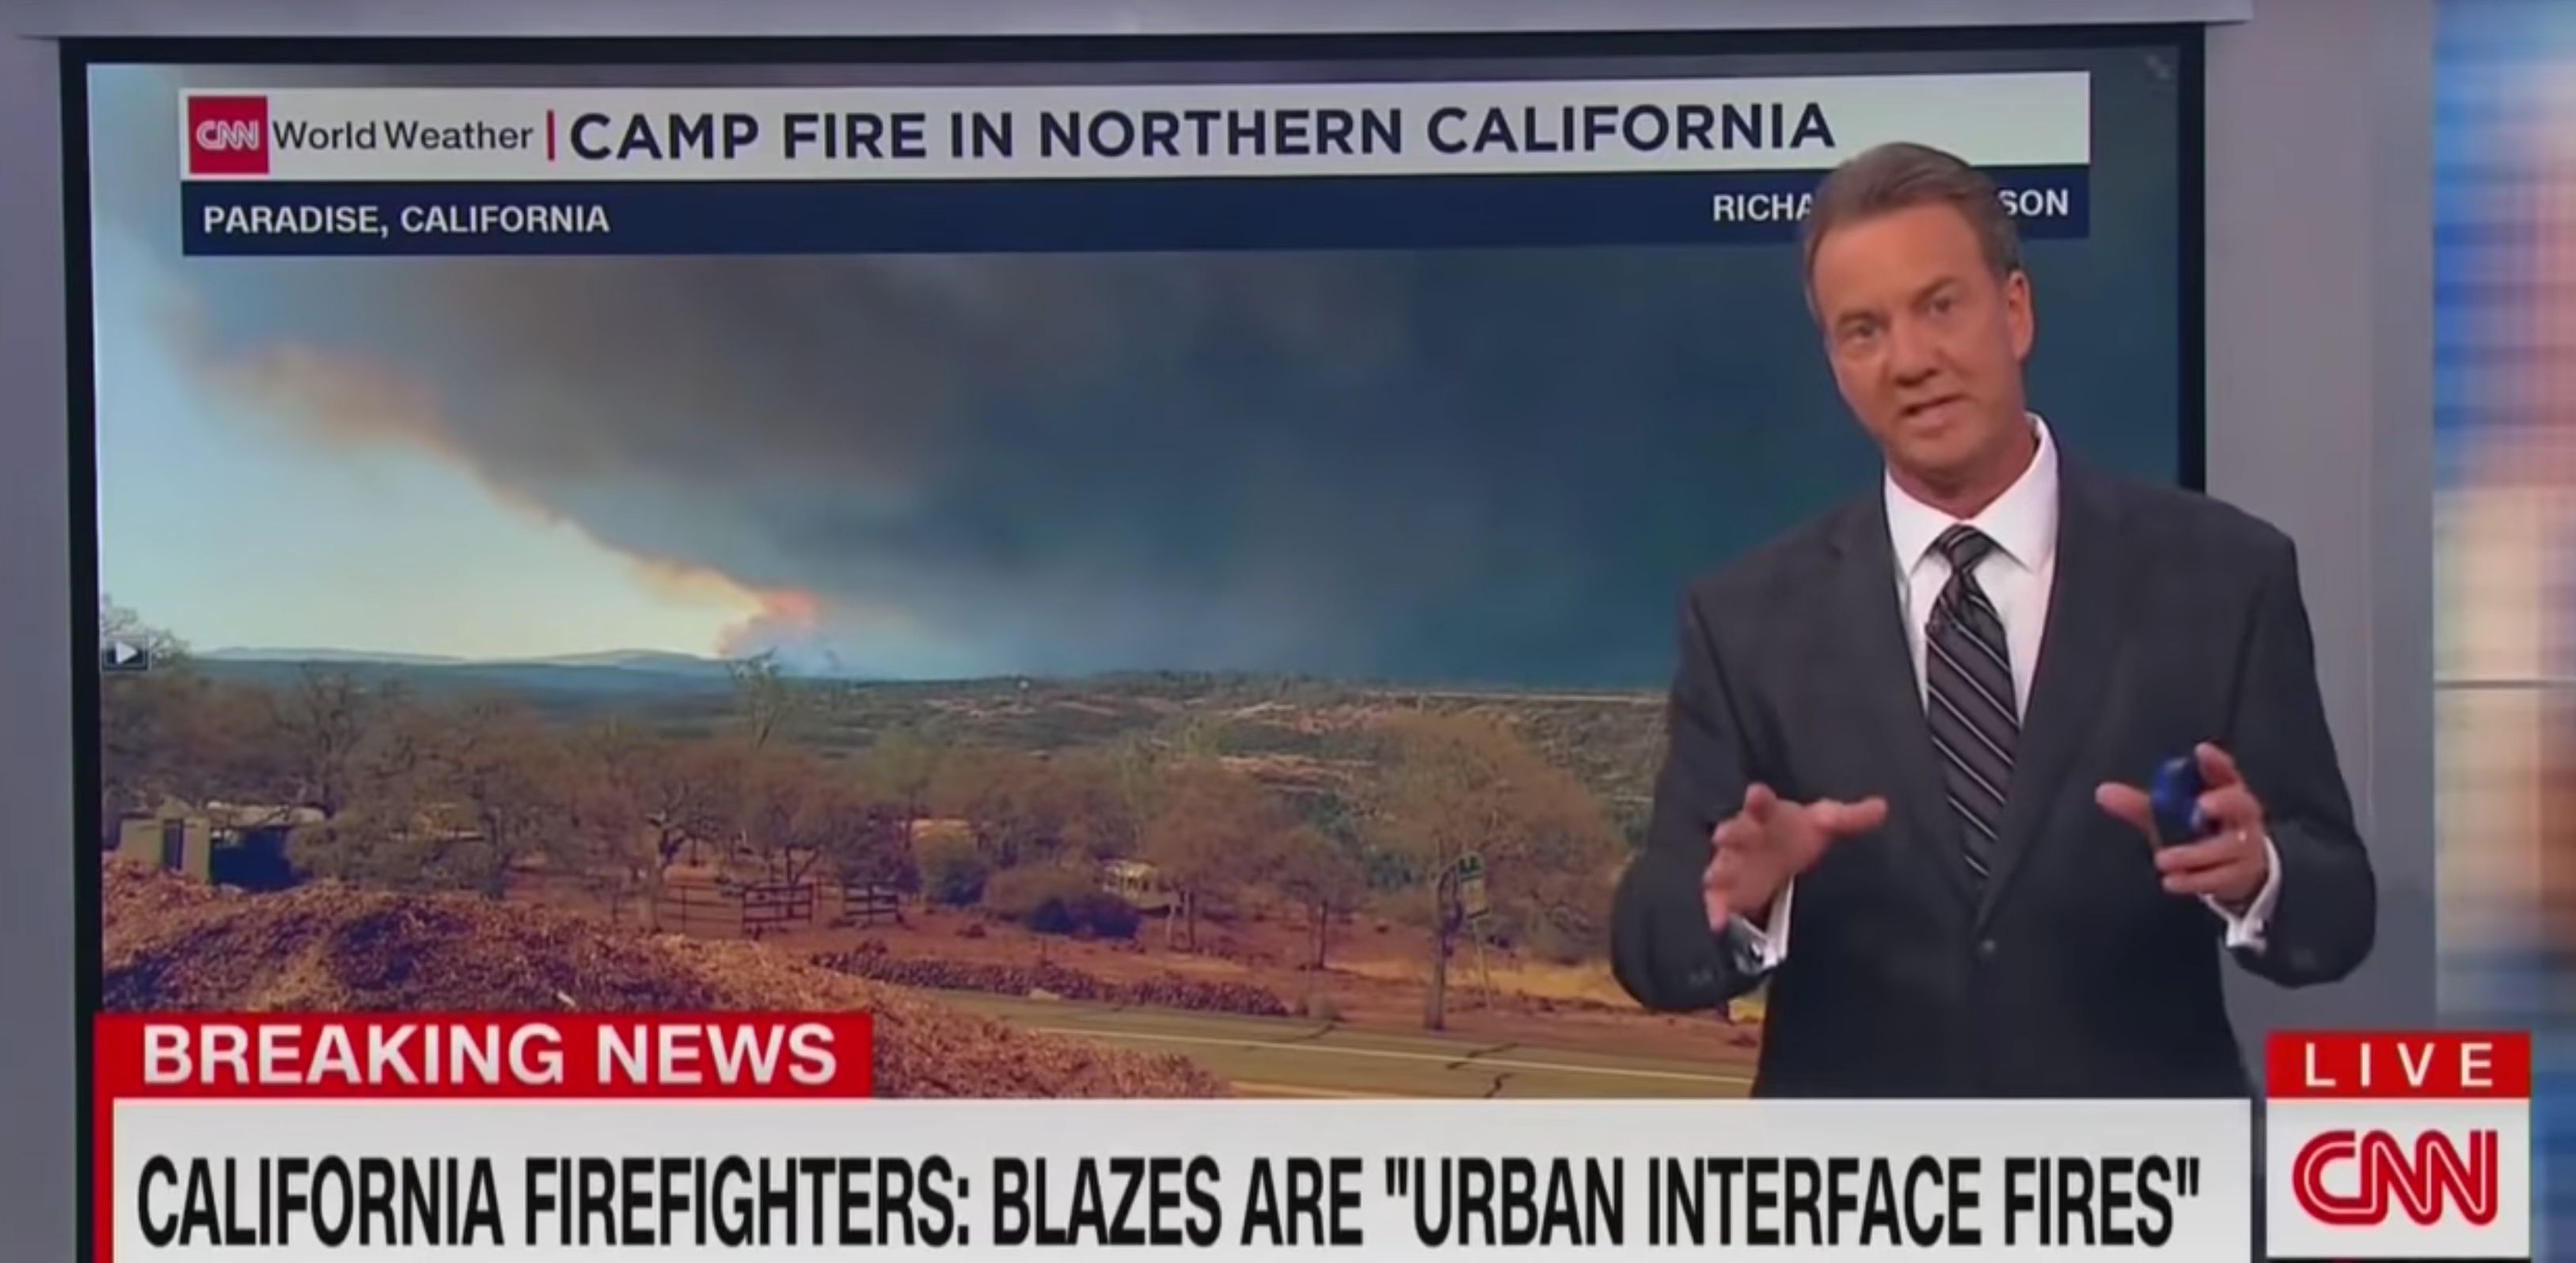 CNN meteorologist Tom Sater eviscerates Trump over misguided wildfire tweet